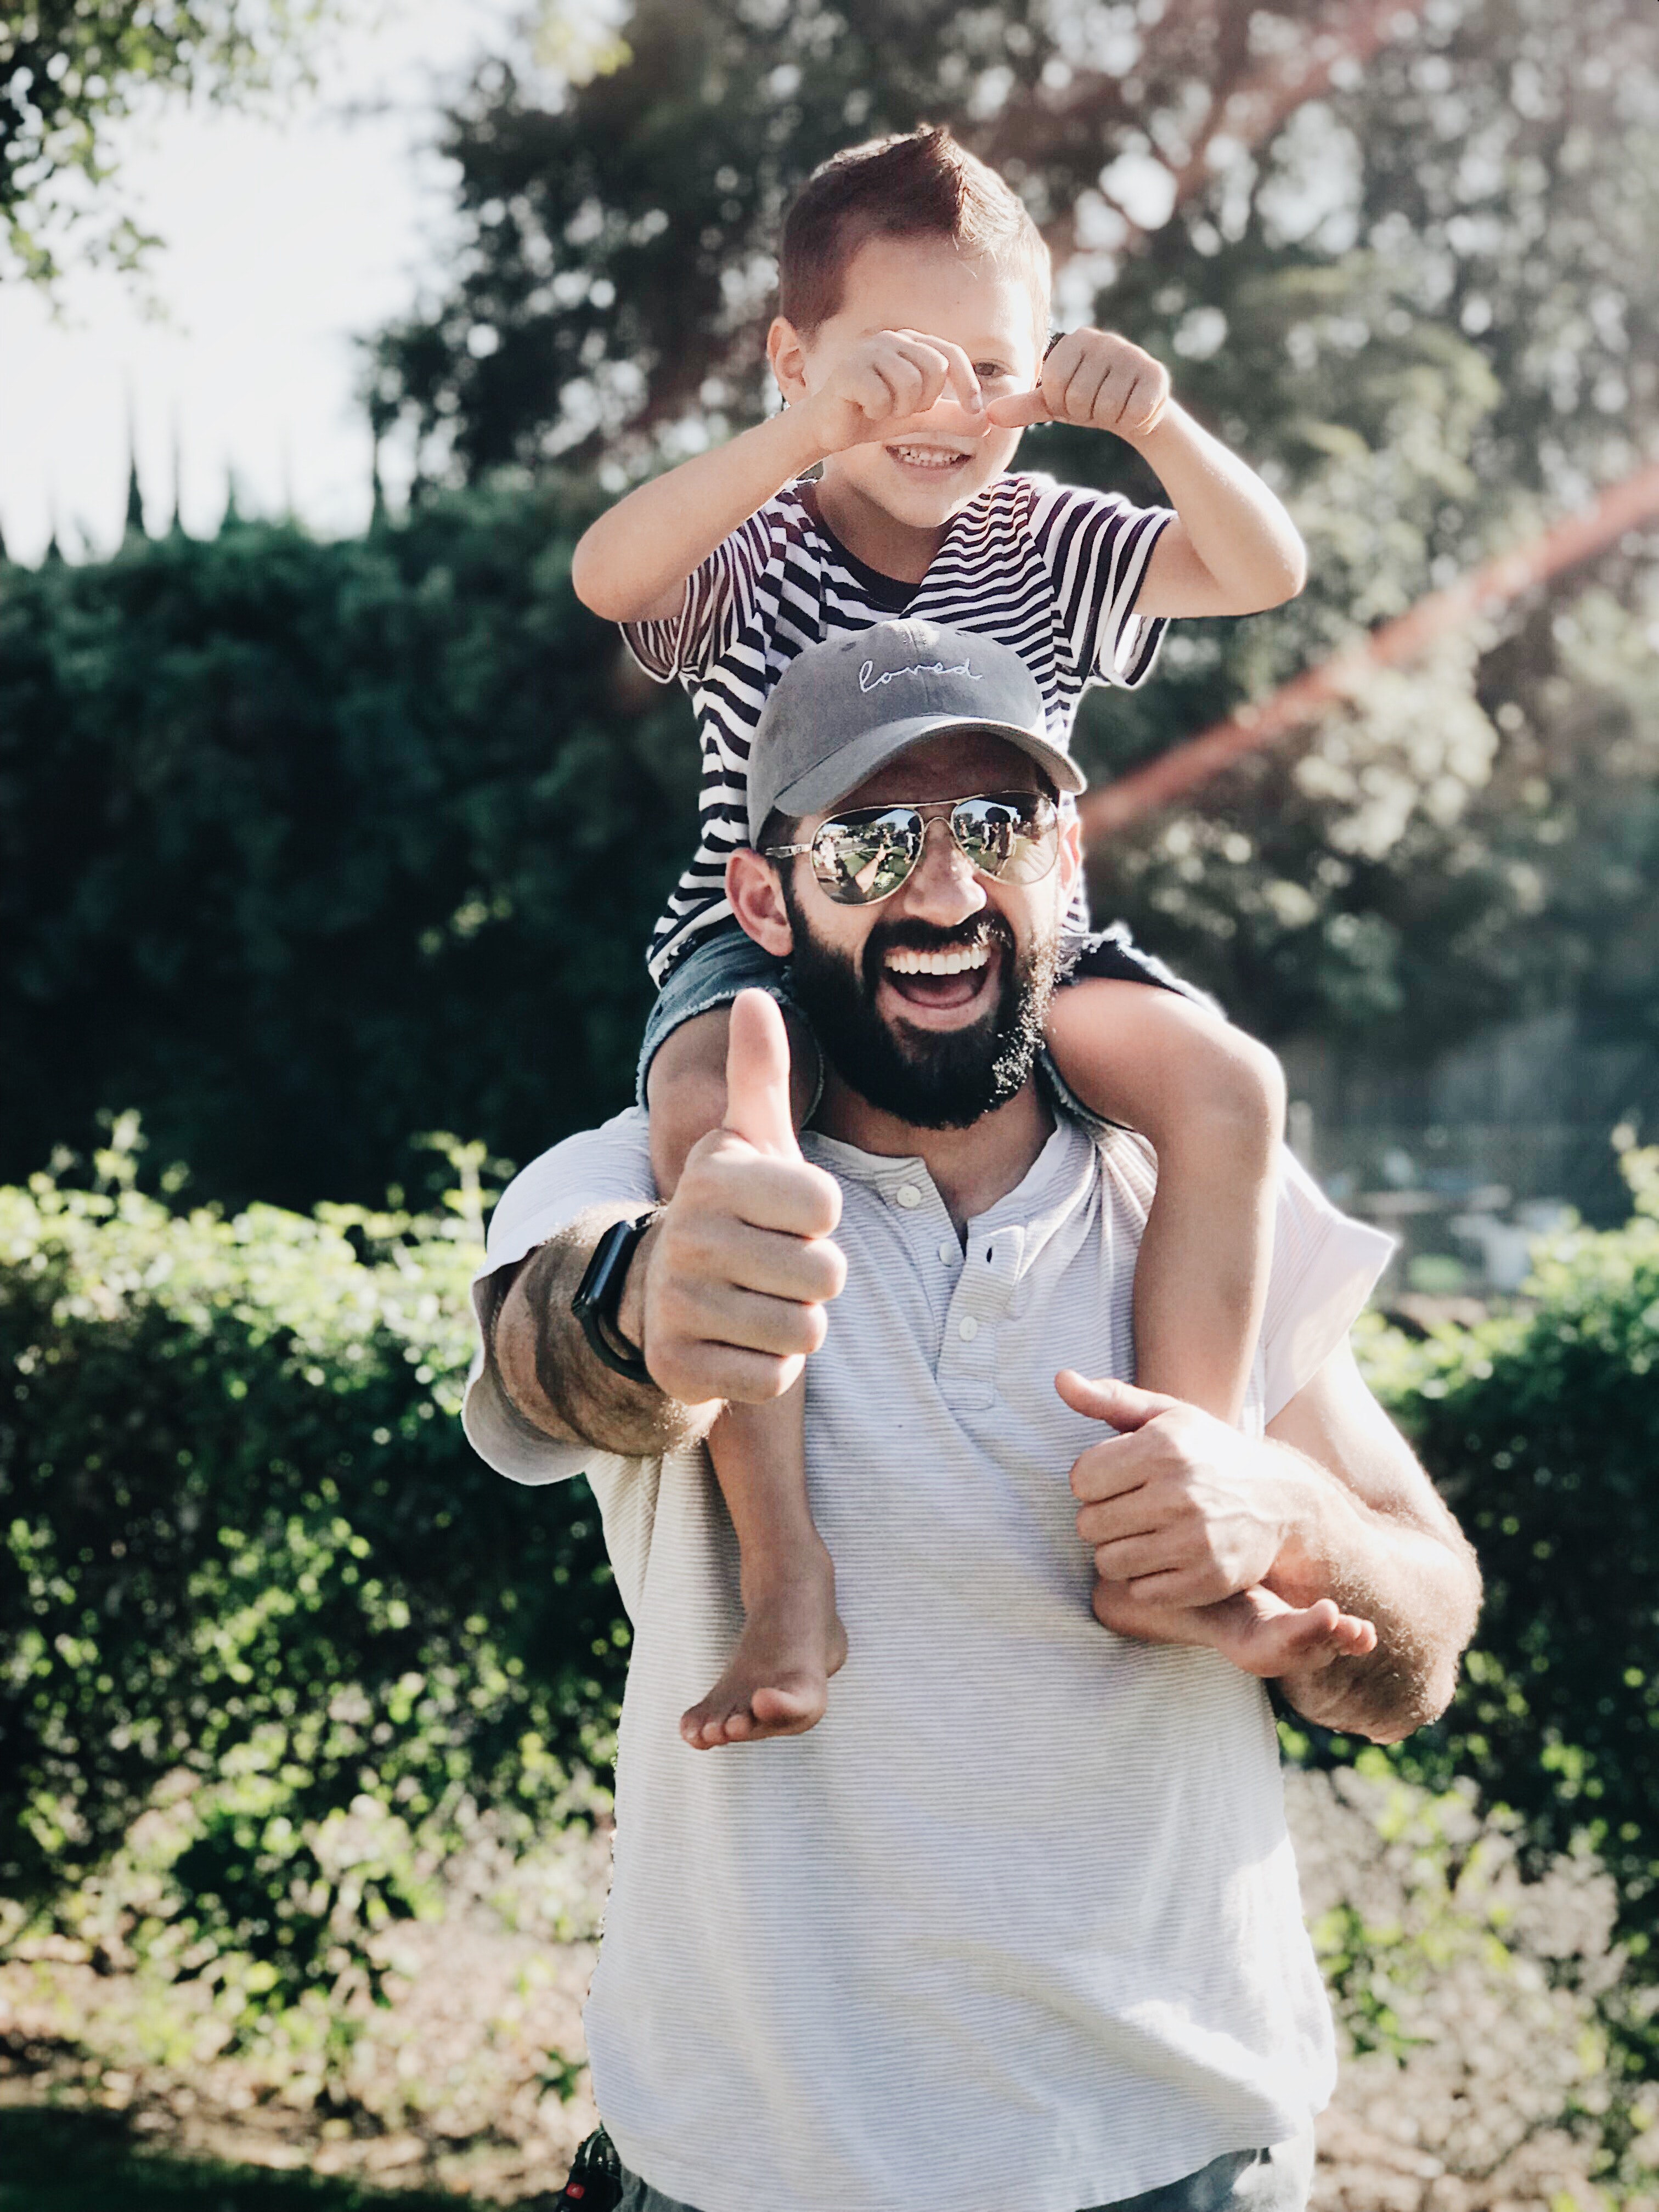 Happy kid riding father's shoulders while dad smiles at camera